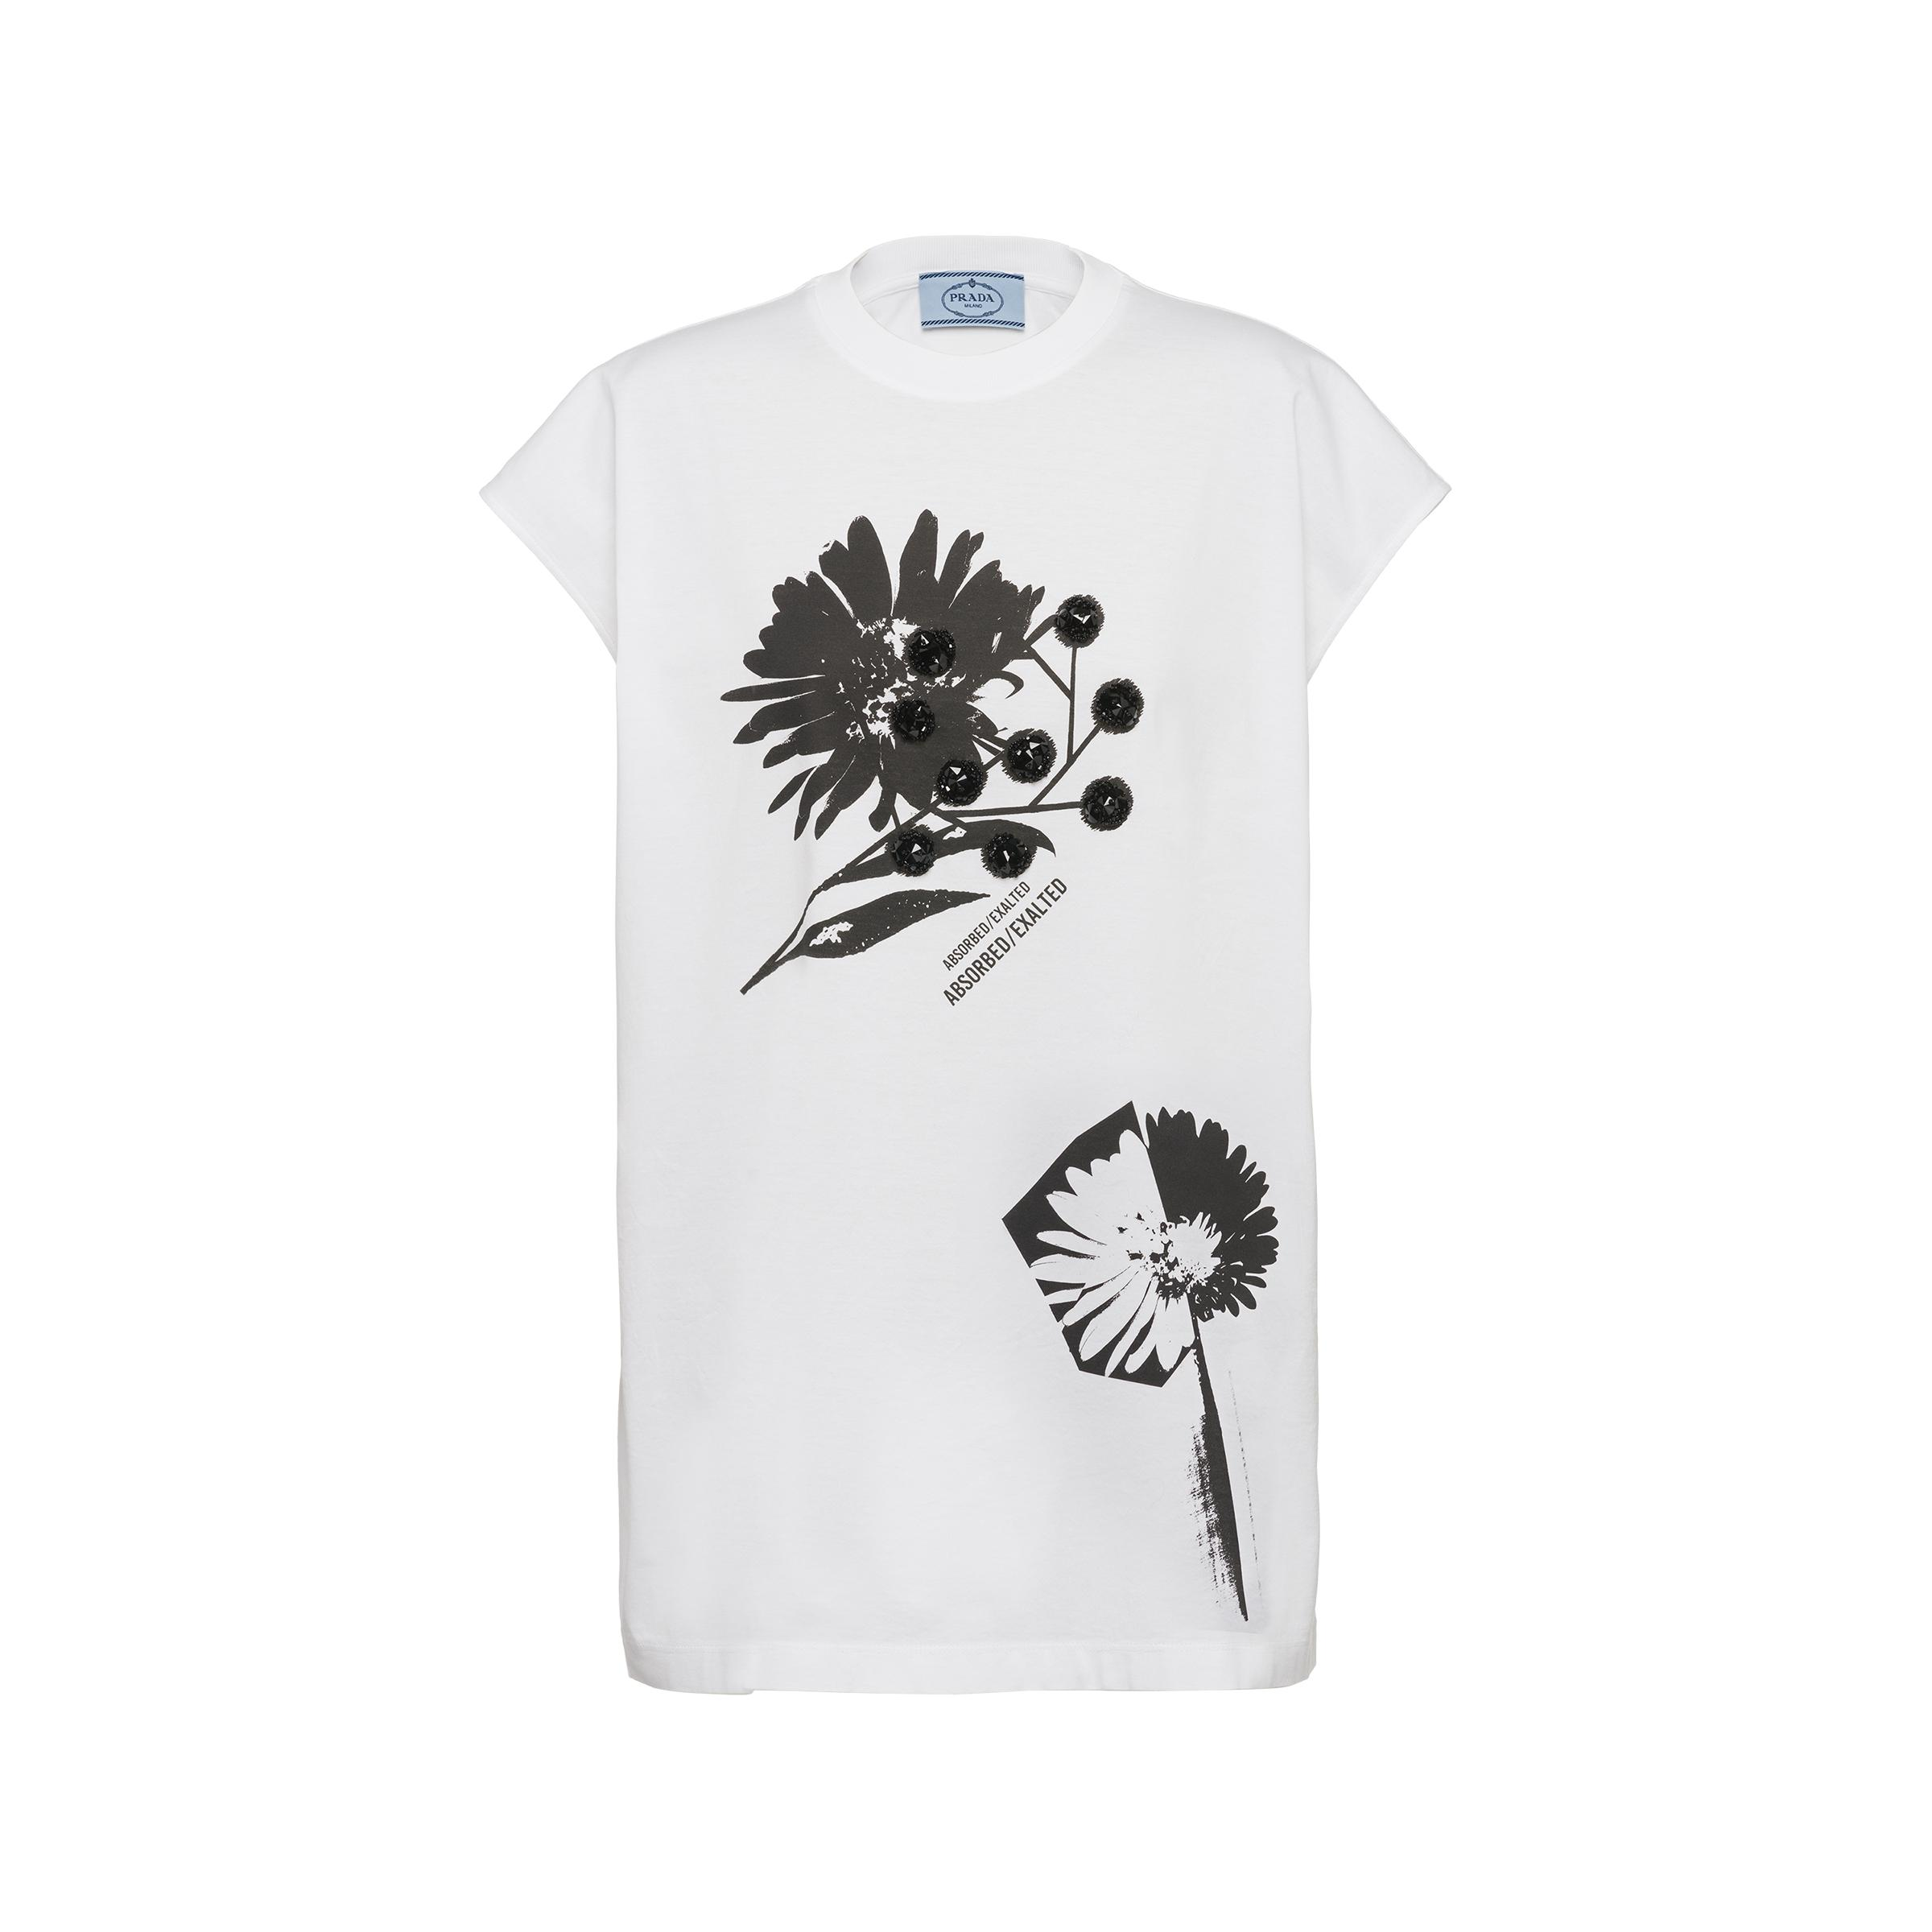 Printed Embroidered Jersey T-shirt Women White/black